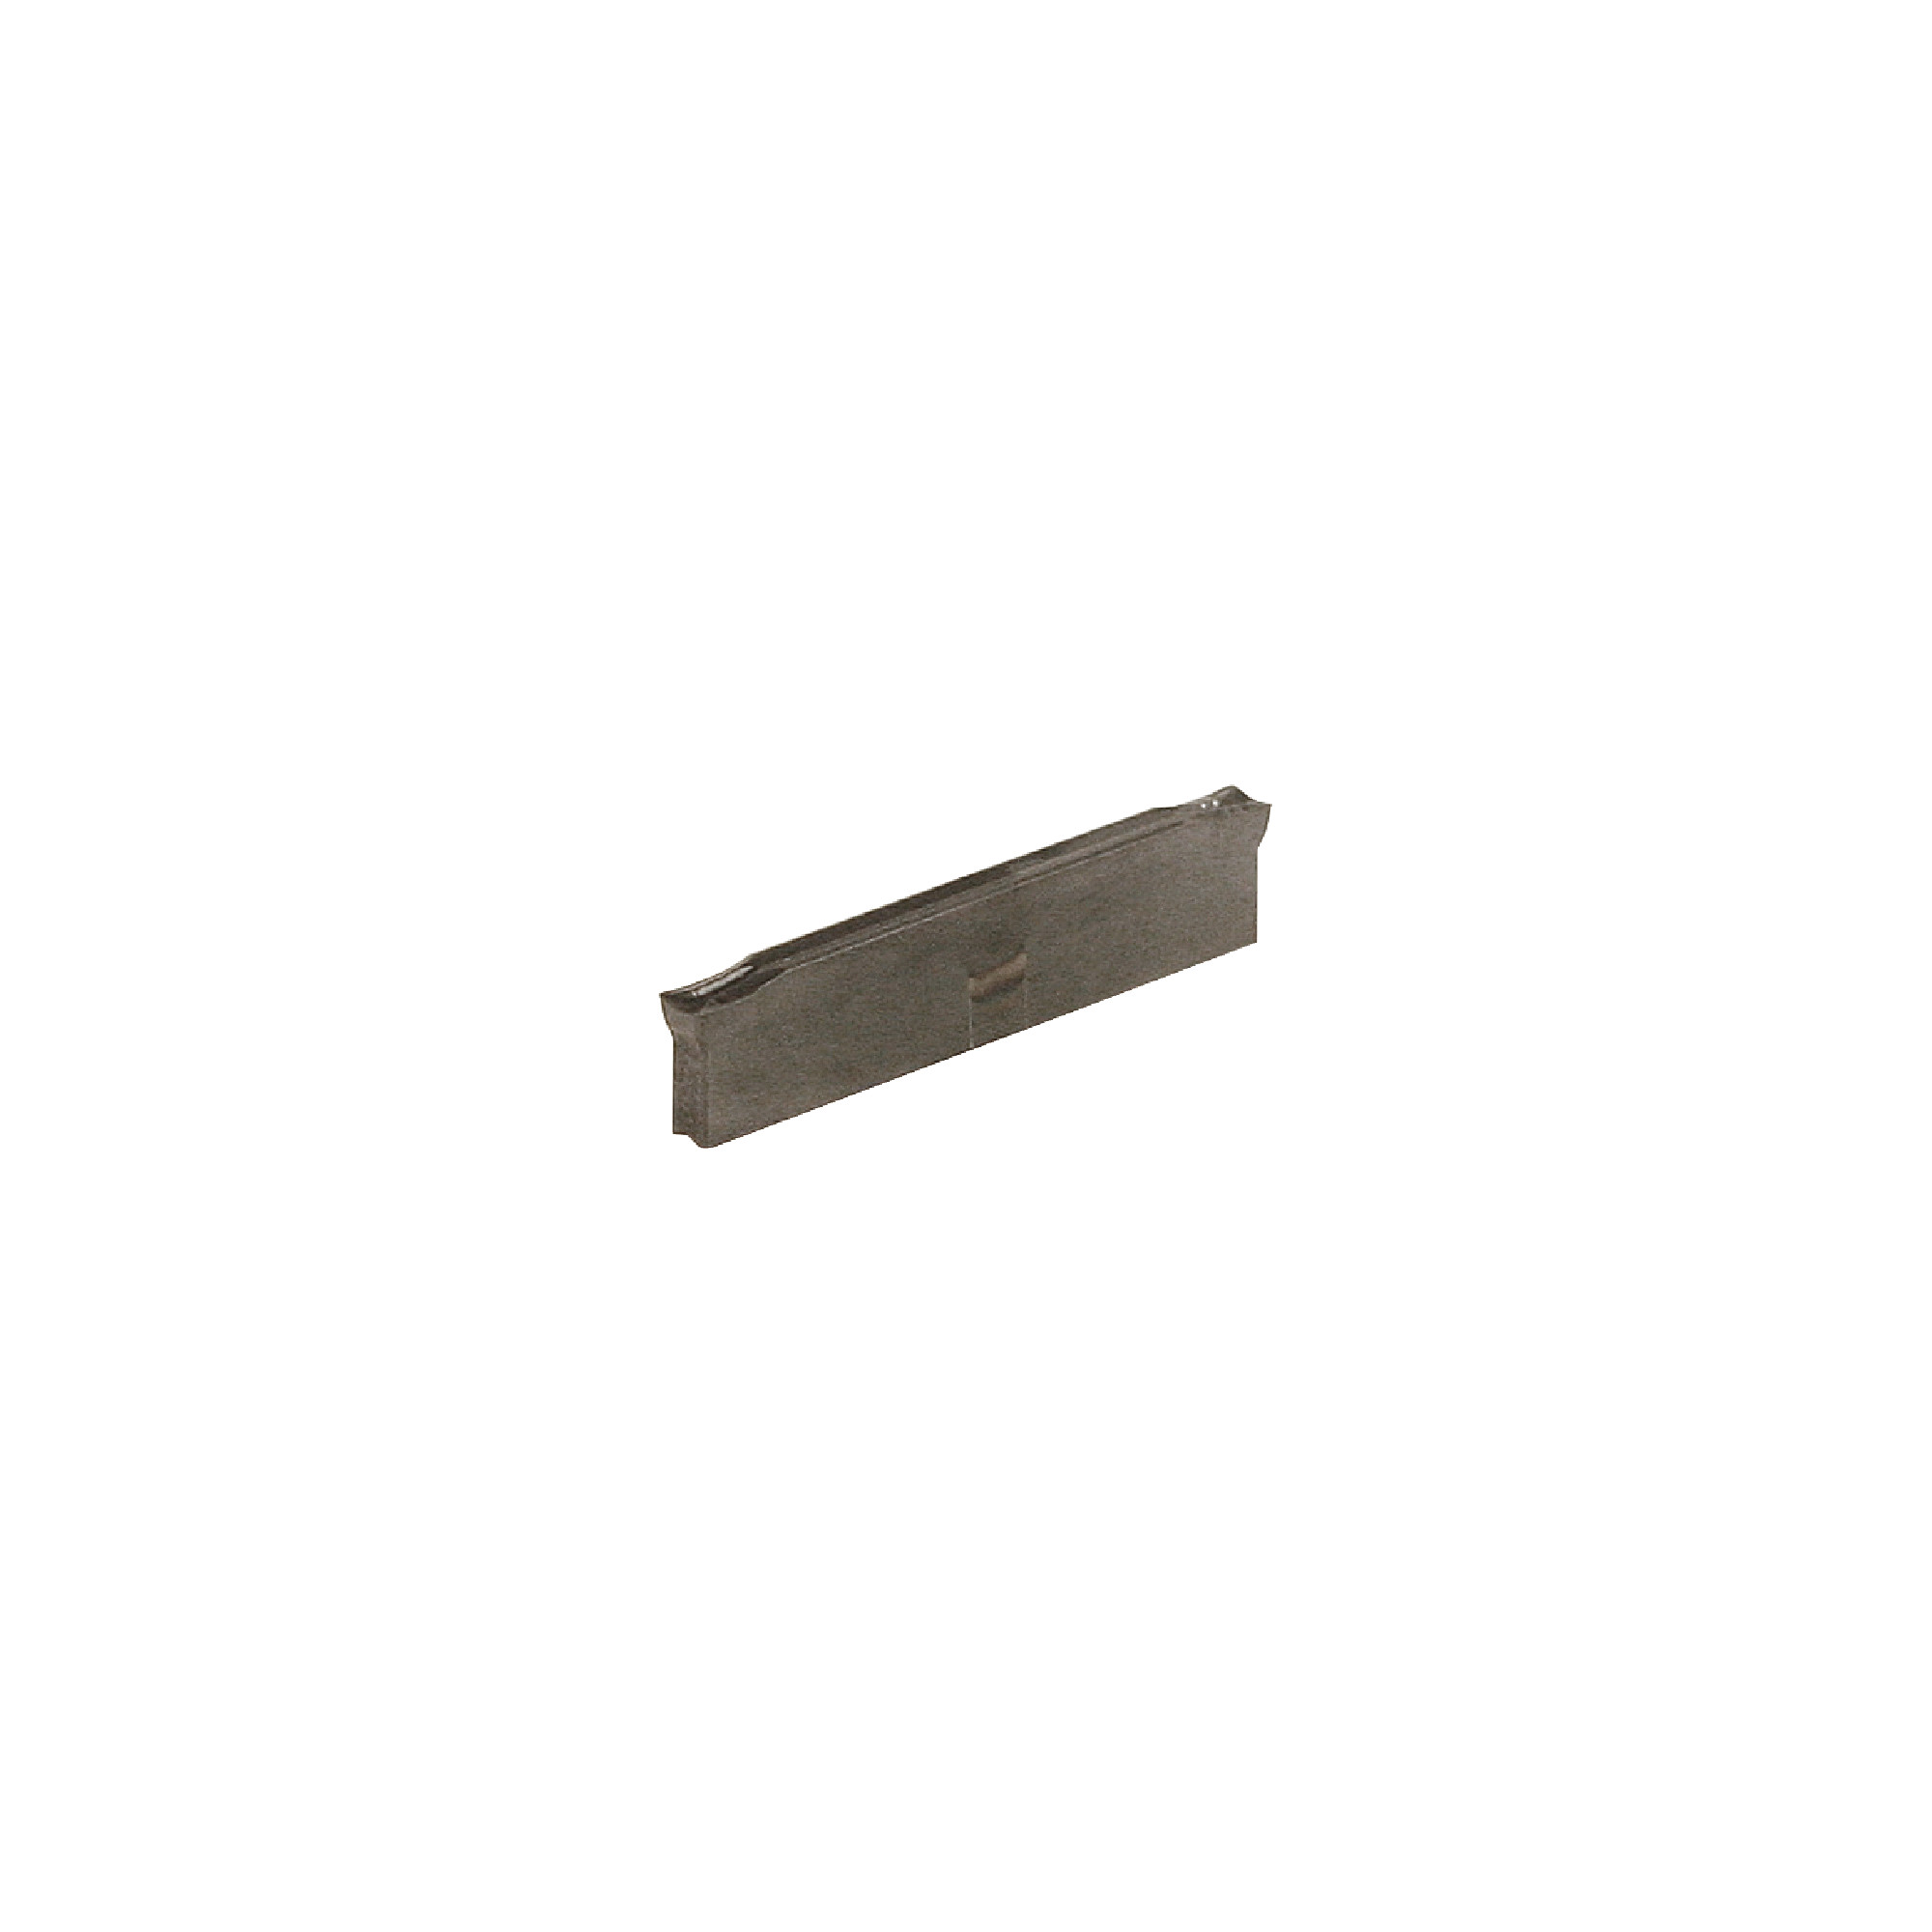 """ARNO - SA35-3003N-T1 AP5020 / SA - GROOVING Indexable Carbide Insert / 0.118"""" Cutting Width"""